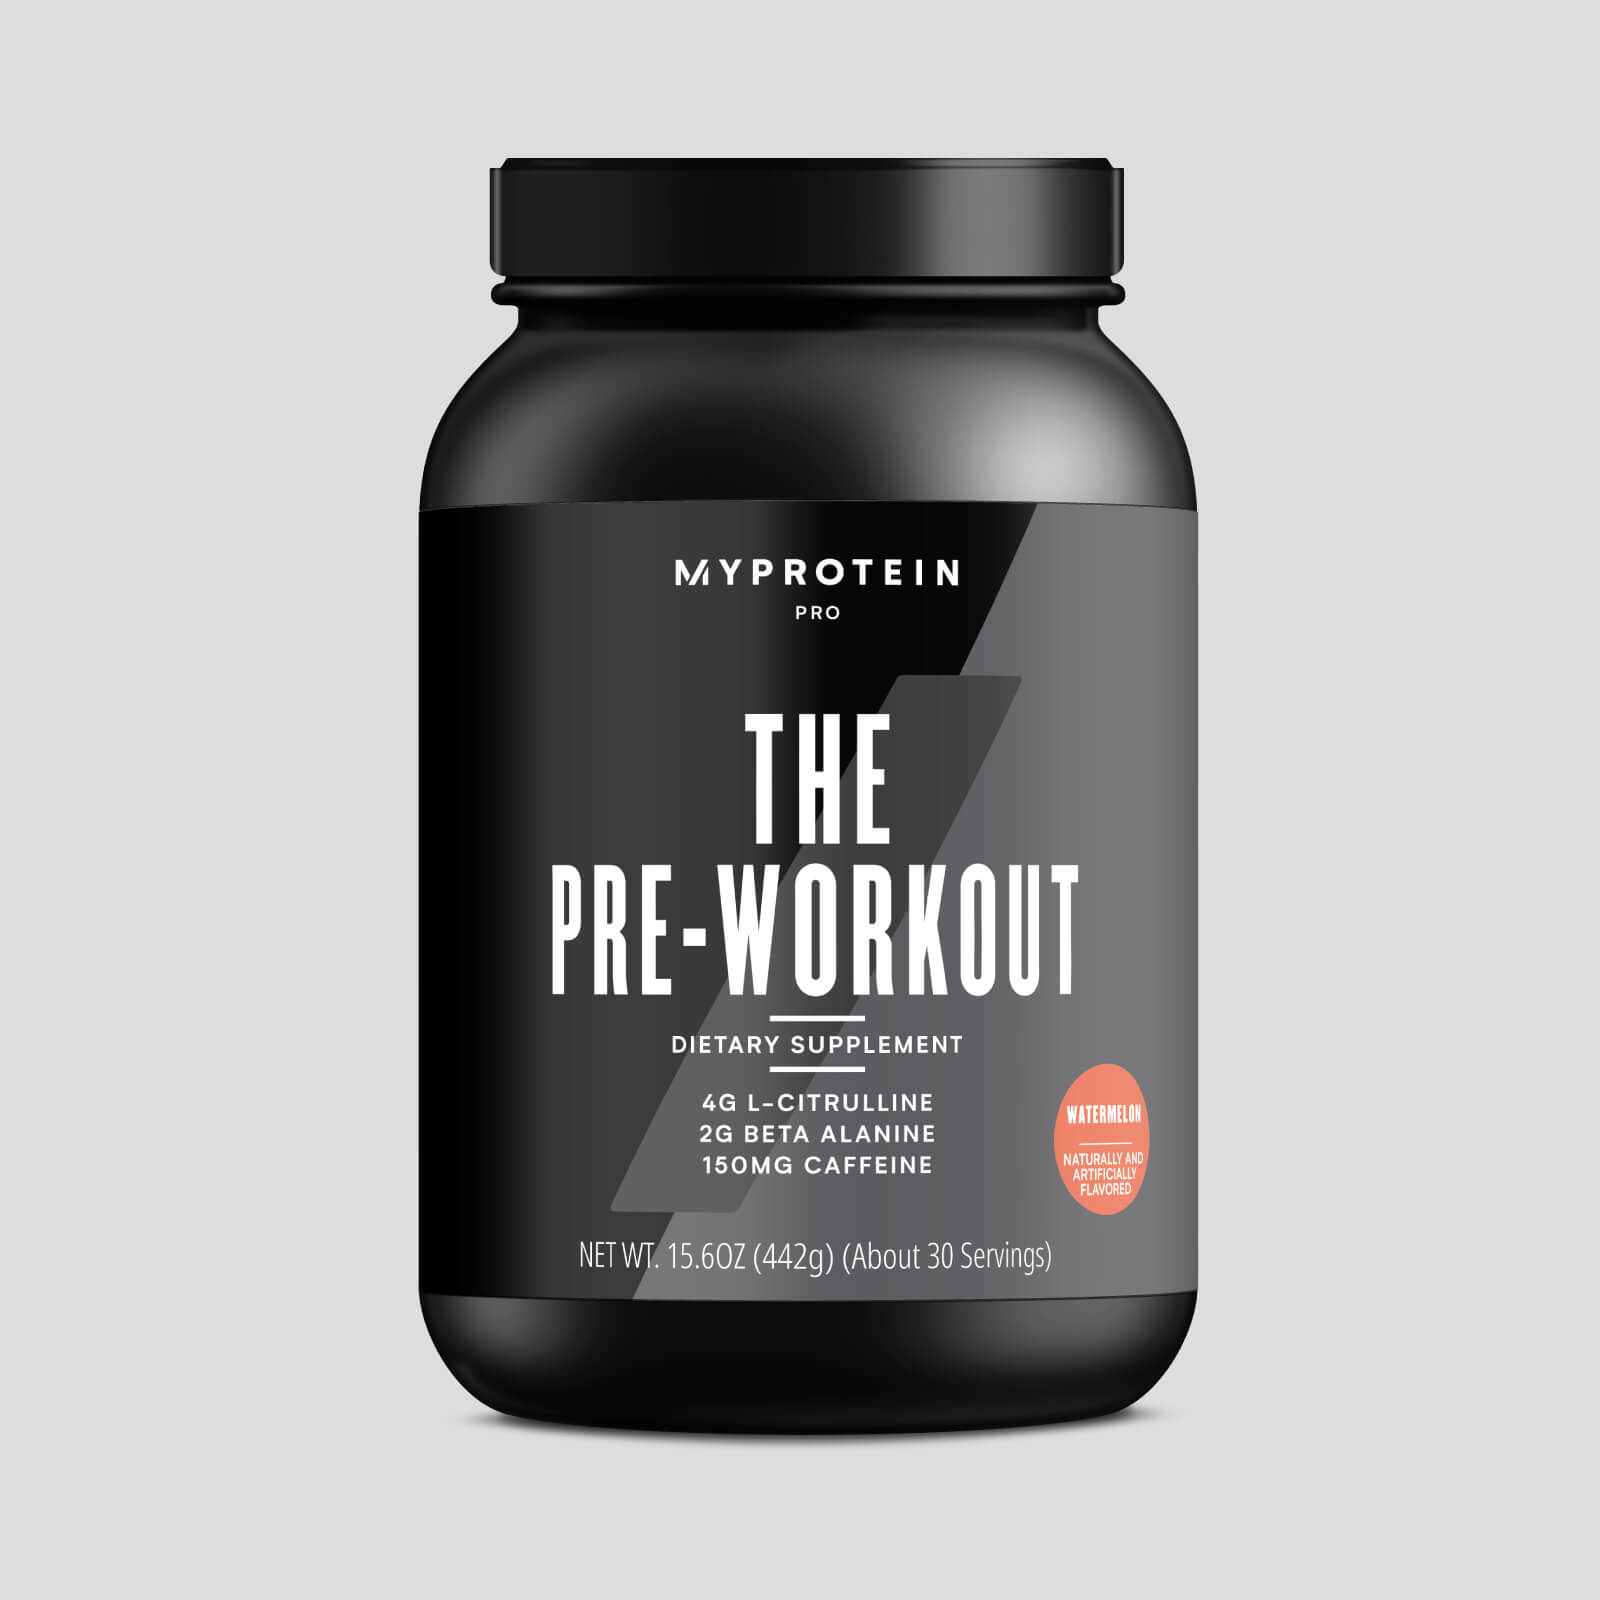 Buy THE Pre-Workout™ | Pre Workout | MYPROTEIN™